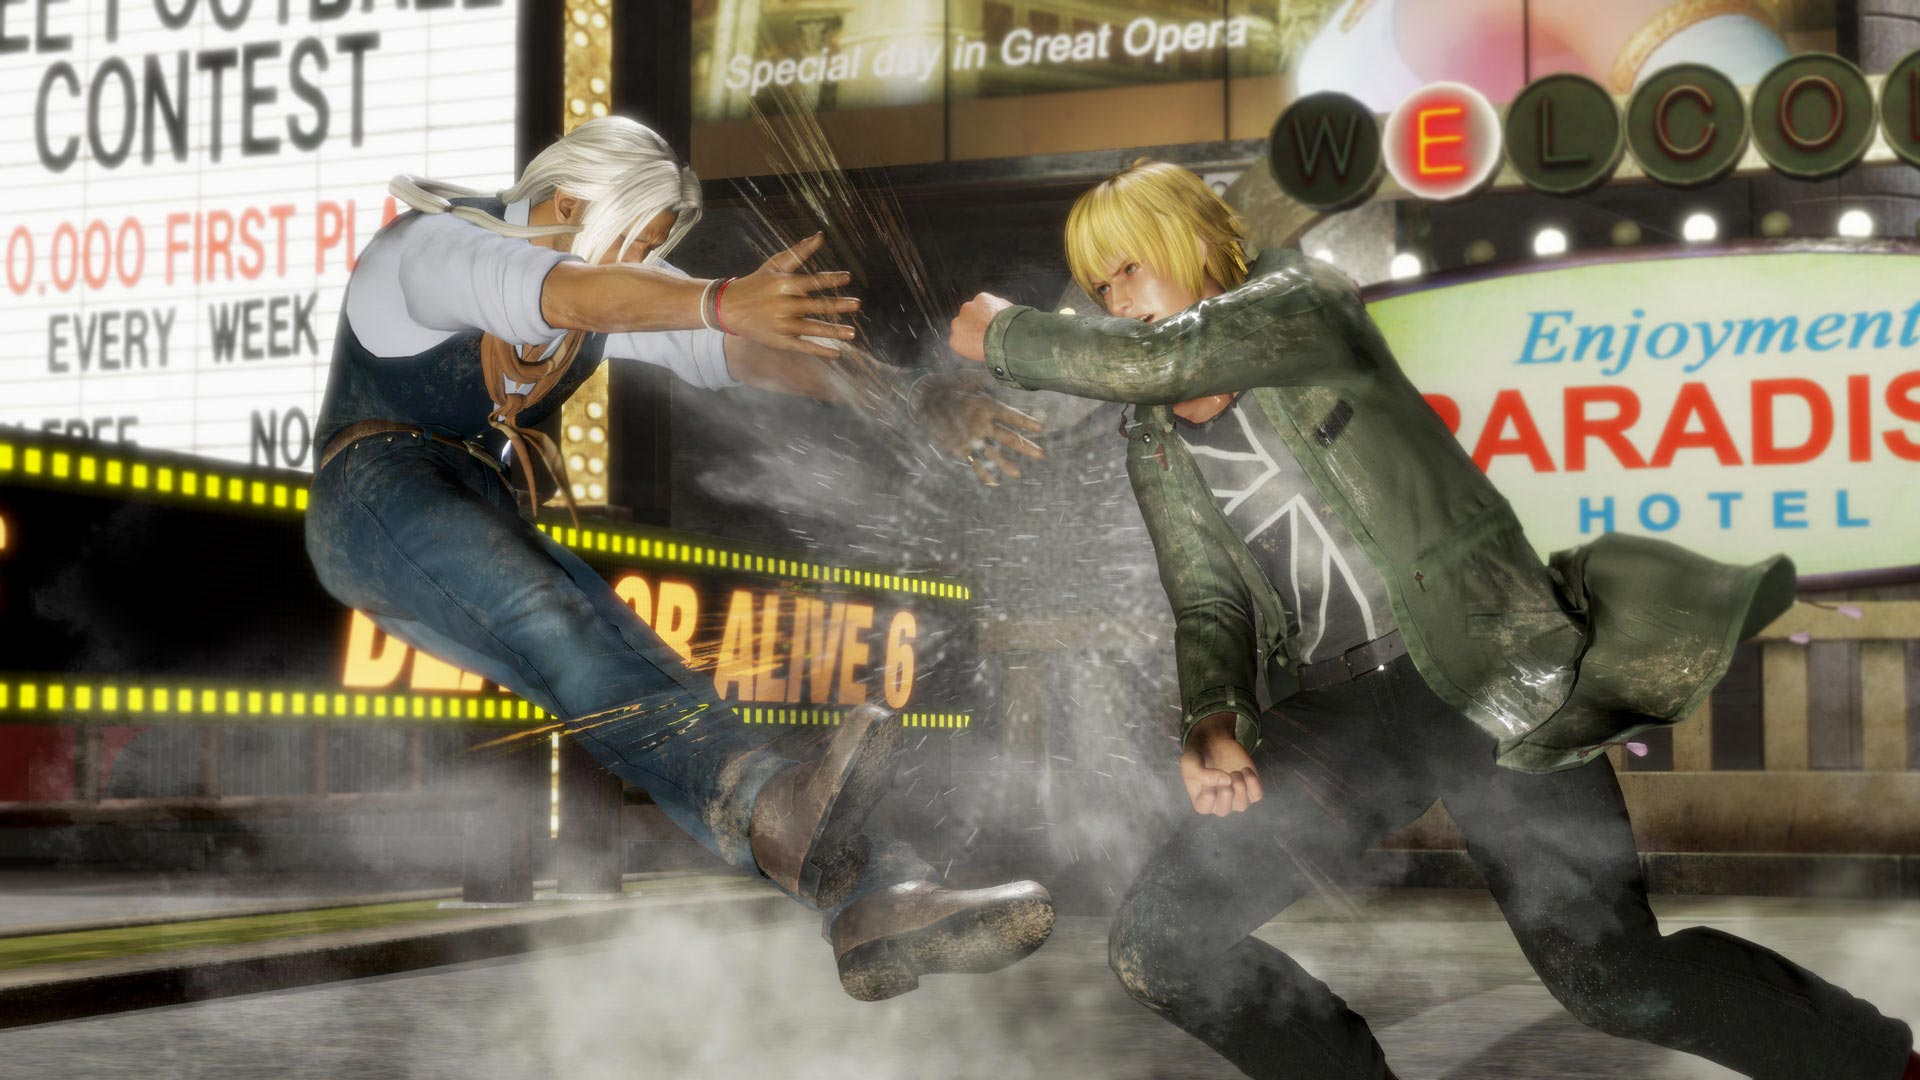 Eliot and Brad Wong in Dead or Alive 6 2 out of 6 image gallery